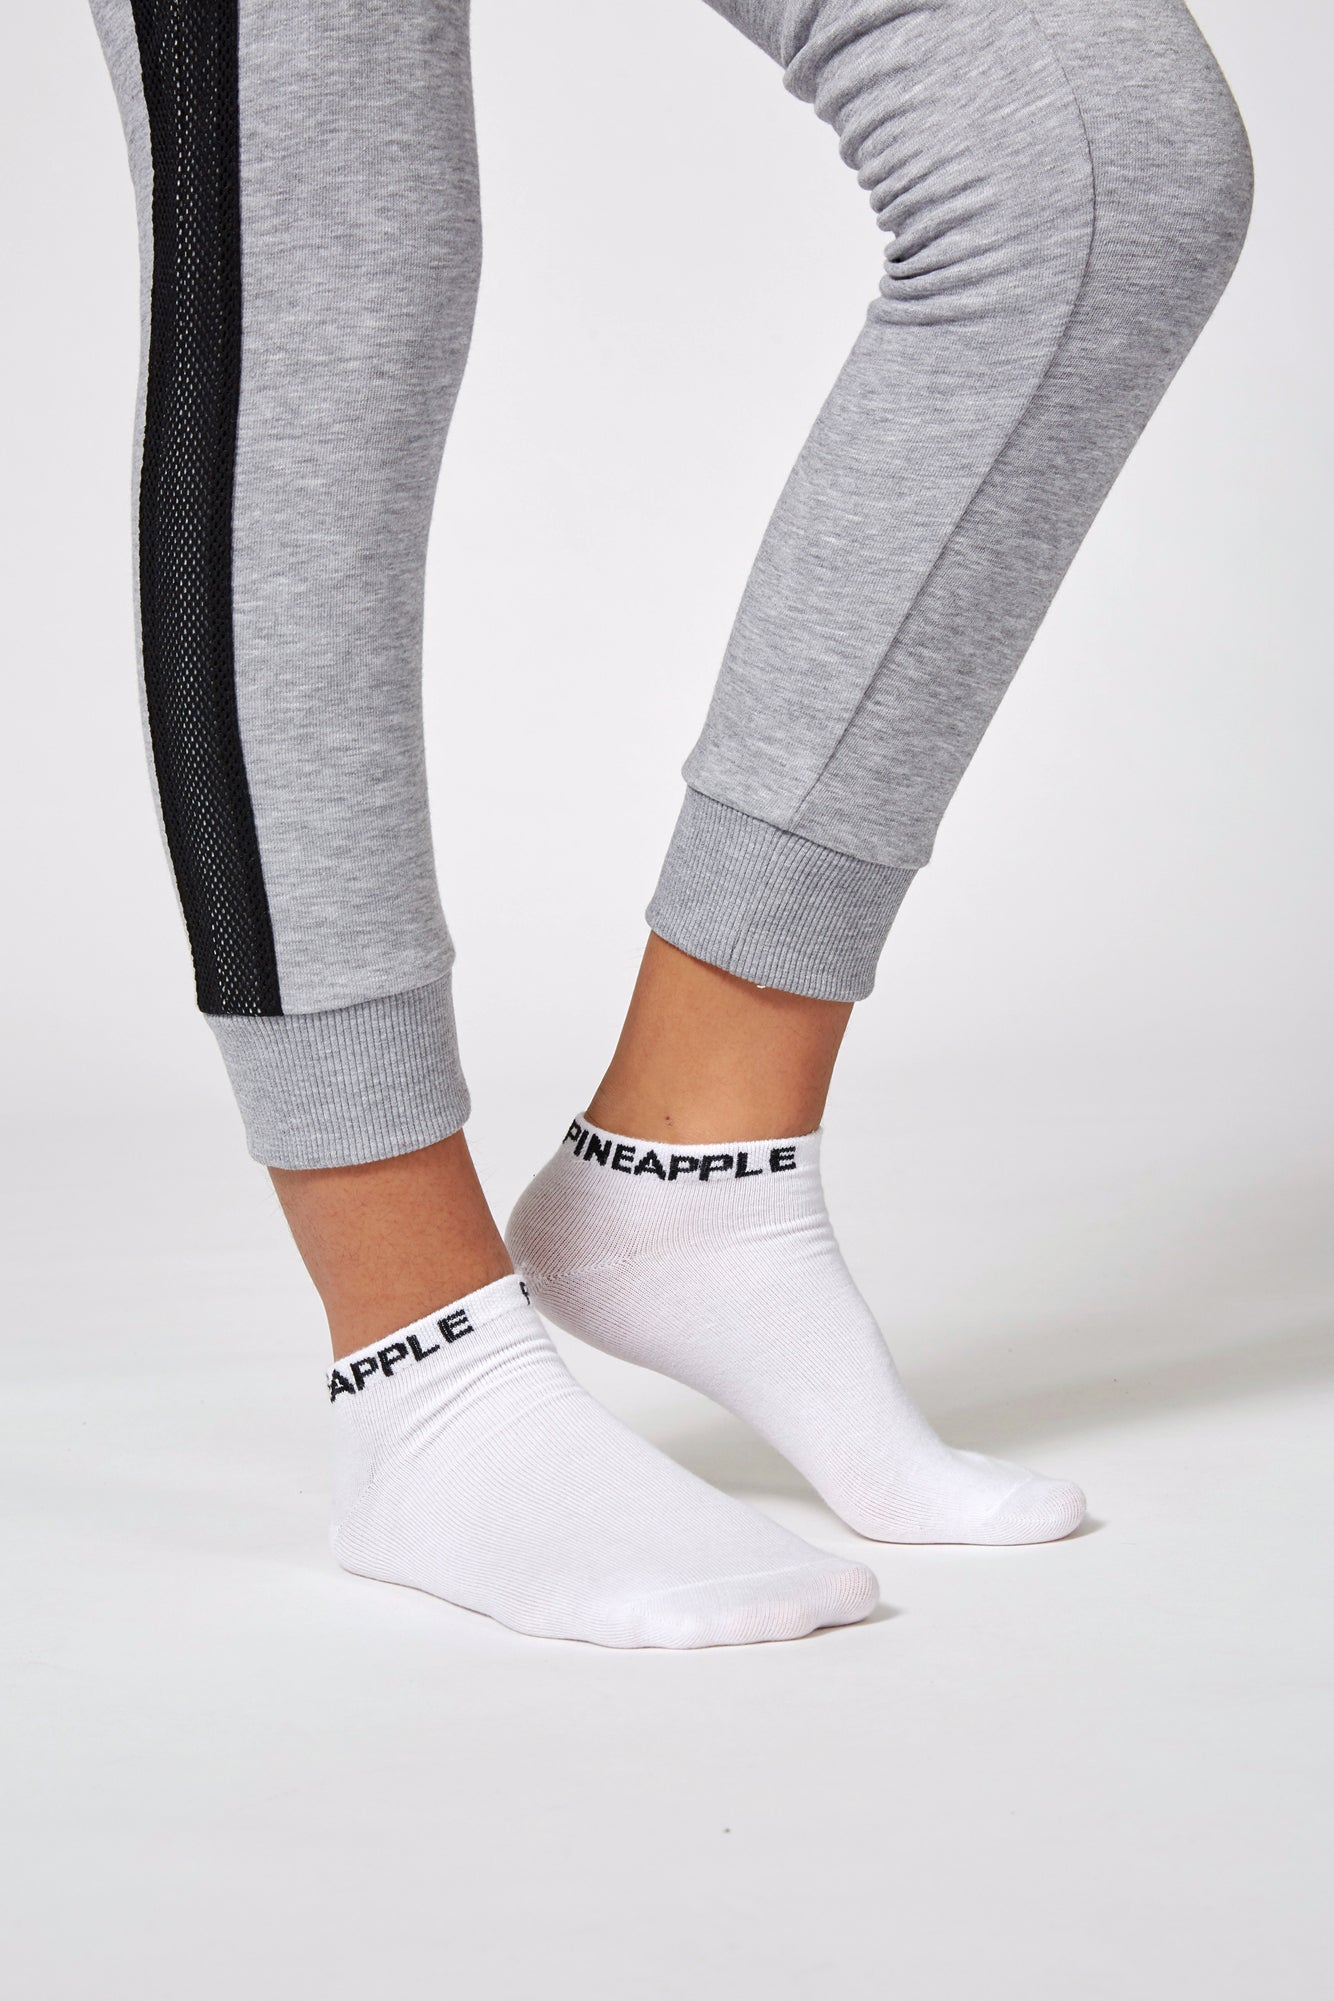 Two Pairs Pineapple Ankle Socks